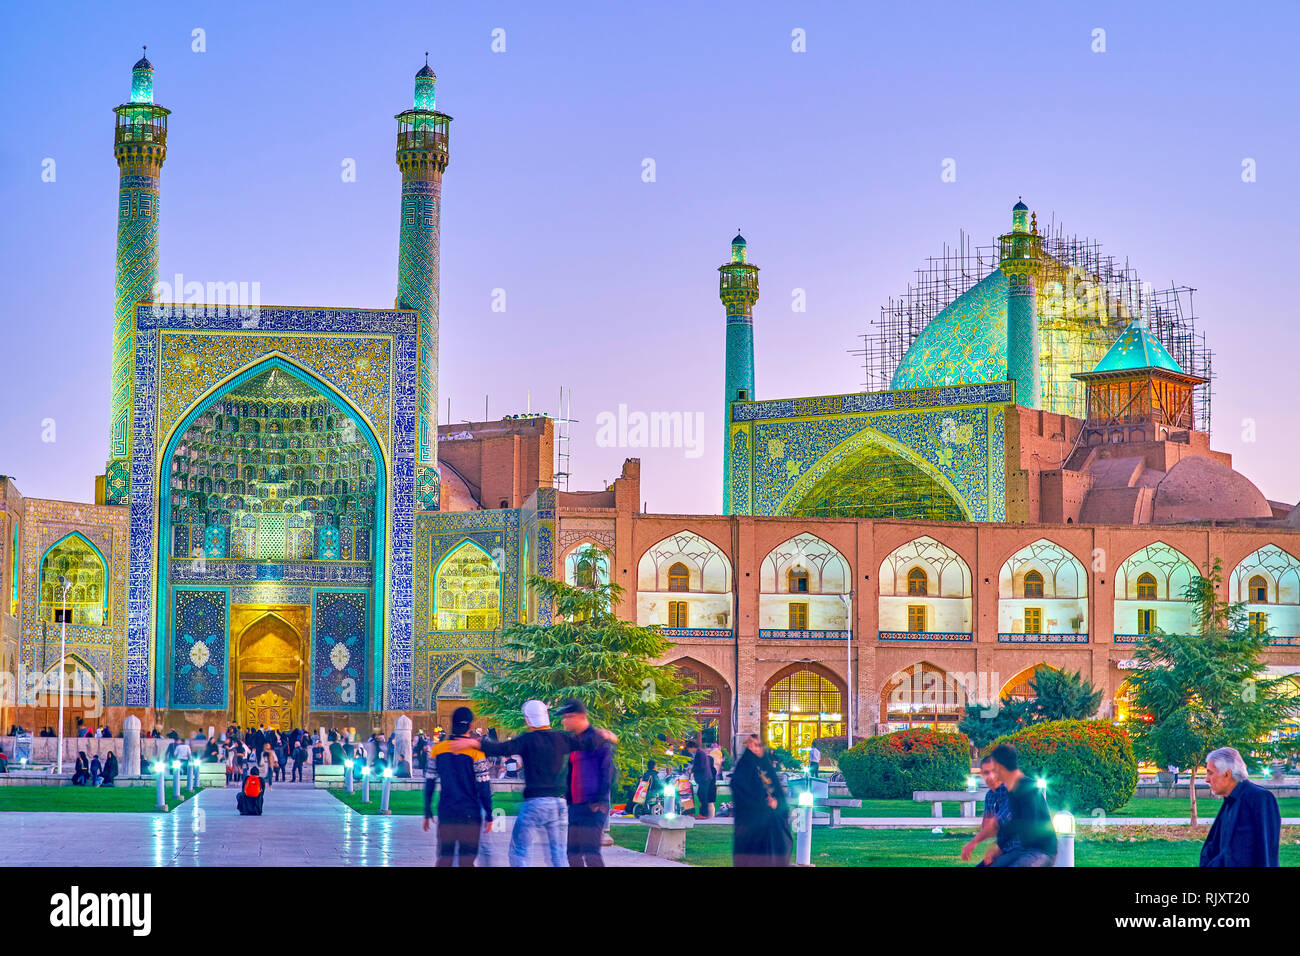 ISFAHAN, IRAN - OCTOBER 19, 2017: The beautiful evening illumination of colorful Shah Mosque, on October 19 in Isfahan Stock Photo